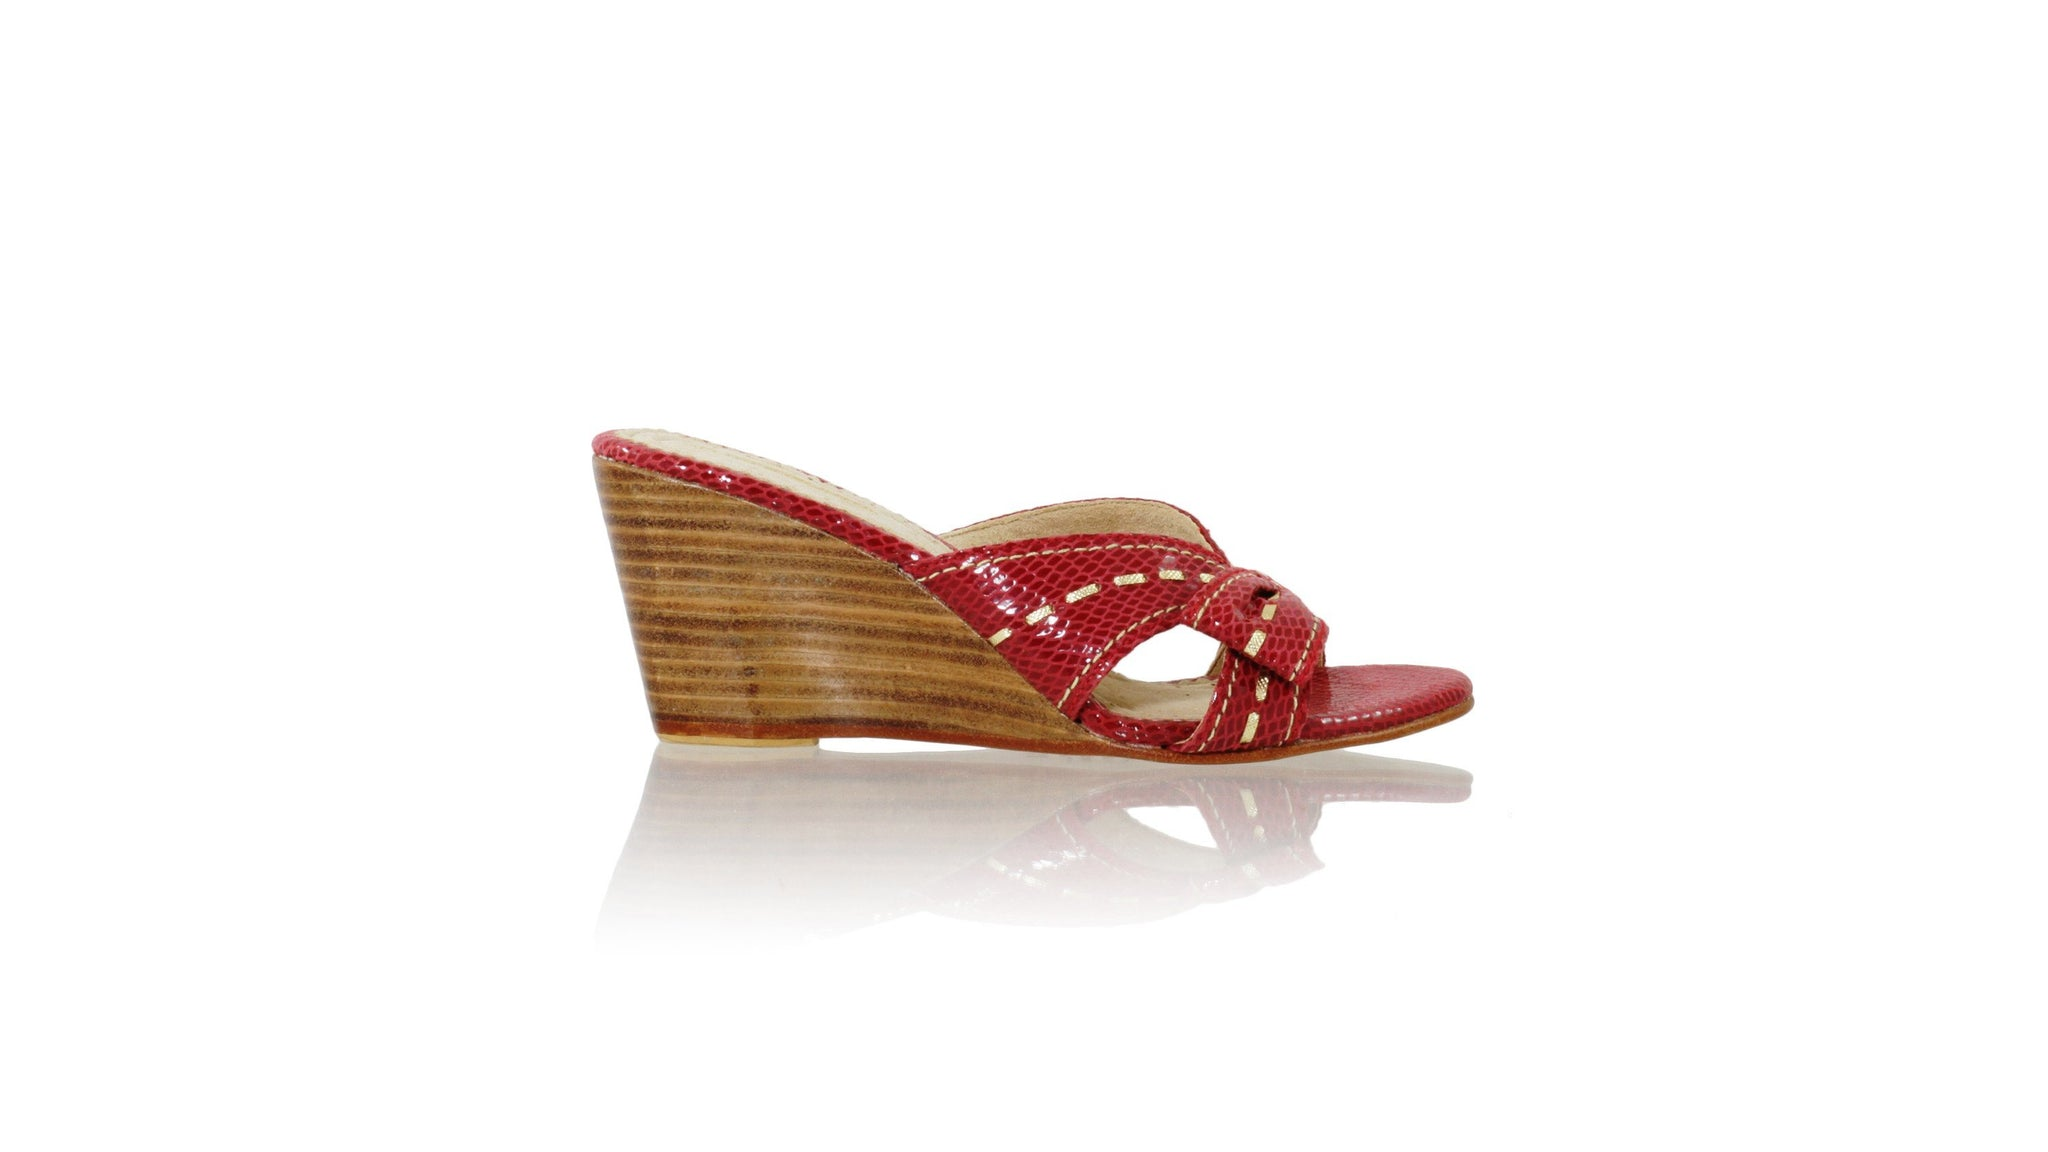 5482d5bf804ba Leather-shoes-Sri wedges 80mm - Red Snake Print   Gold-sandals wedges